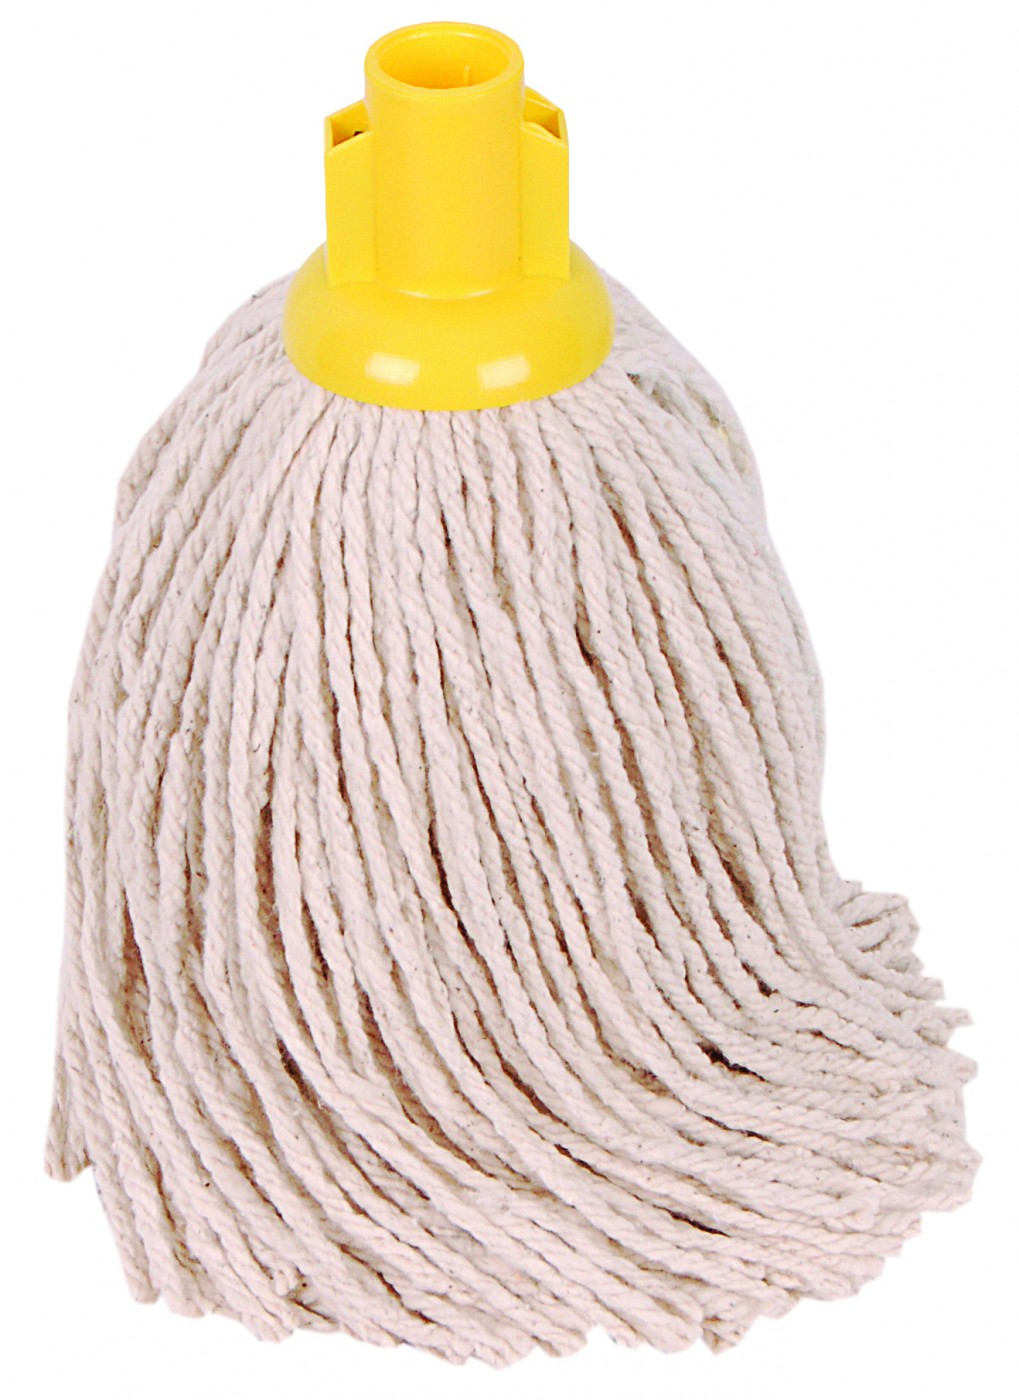 Professional Socket Mop Head Yellow Size 14 Cleaning Mopping Mop Head Buy One Give One Other Cleaning Supplies